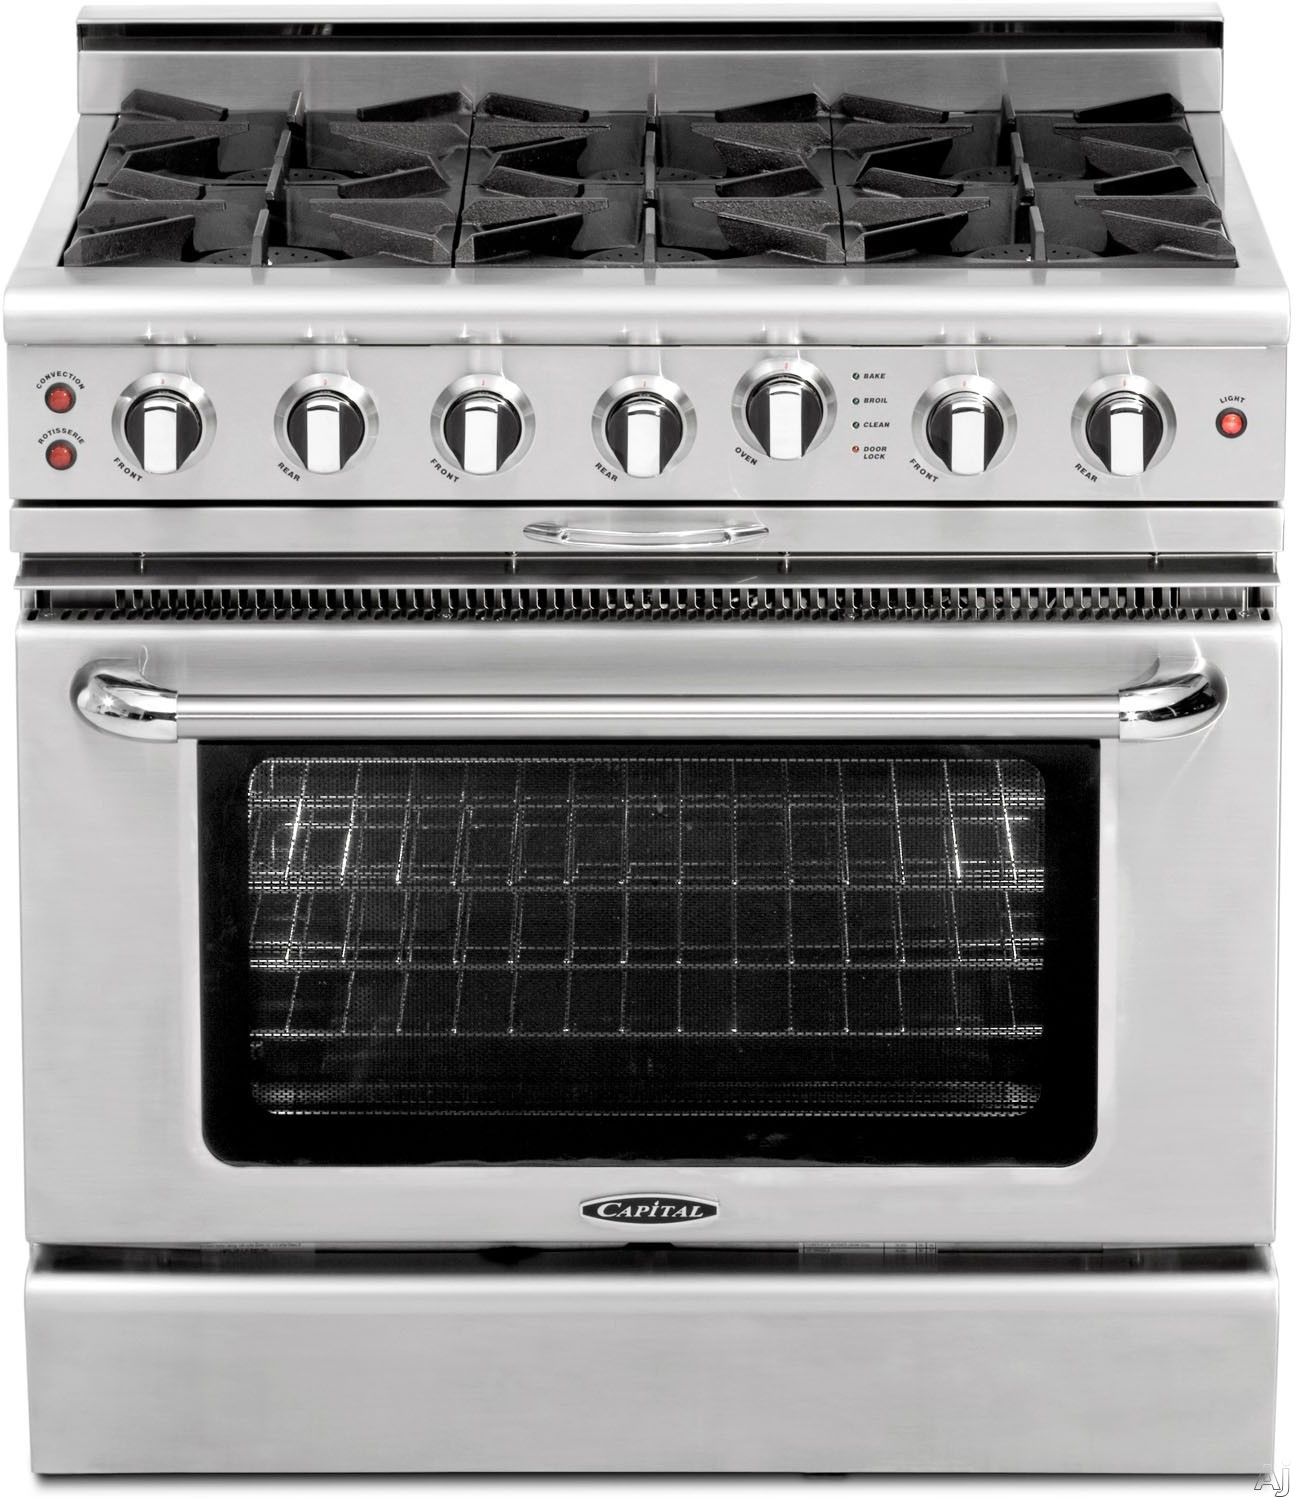 """Capital Culinarian Series CGSR366N 36 Inch Pro-Style Gas Range with 6 Open Burners, EZ-Glidesâ""""¢ Drip Tray, Flex-Rollâ""""¢ Oven Racks, Self Clean, Inrared Broiler, Moto-Rotisâ""""¢ Rotisserie and 4.6 cu. ft. Convection Oven: Stainless Steel Natural Gas CGSR36"""